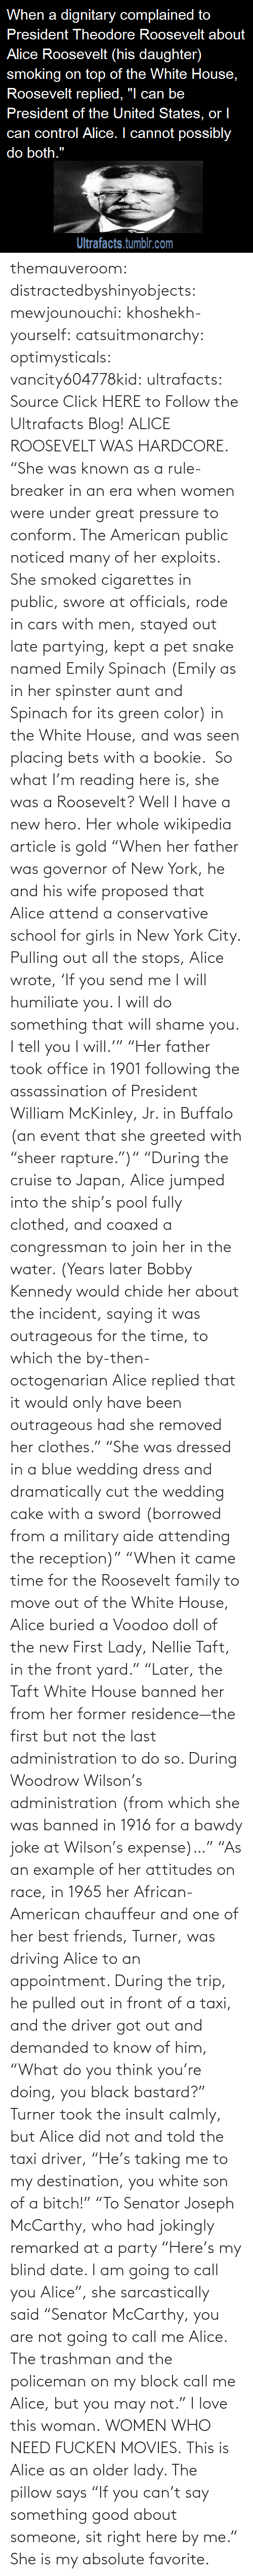 "Pressure: themauveroom: distractedbyshinyobjects:  mewjounouchi:  khoshekh-yourself:  catsuitmonarchy:  optimysticals:  vancity604778kid:  ultrafacts:     Source Click HERE to Follow the Ultrafacts Blog!     ALICE ROOSEVELT WAS HARDCORE. ""She was known as a rule-breaker in an era when women were under great pressure to conform. The American public noticed many of her exploits. She smoked cigarettes in public, swore at officials, rode in cars with men, stayed out late partying, kept a pet snake named Emily Spinach (Emily as in her spinster aunt and Spinach for its green color) in the White House, and was seen placing bets with a bookie.    So what I'm reading here is, she was a Roosevelt?  Well I have a new hero.  Her whole wikipedia article is gold ""When her father was governor of New York, he and his wife proposed that Alice attend a conservative school for girls in New York City. Pulling out all the stops, Alice wrote, 'If you send me I will humiliate you. I will do something that will shame you. I tell you I will.'"" ""Her father took office in 1901 following the assassination of President William McKinley, Jr. in Buffalo (an event that she greeted with ""sheer rapture."")"" ""During the cruise to Japan, Alice jumped into the ship's pool fully clothed, and coaxed a congressman to join her in the water. (Years later Bobby Kennedy would chide her about the incident, saying it was outrageous for the time, to which the by-then-octogenarian Alice replied that it would only have been outrageous had she removed her clothes."" ""She was dressed in a blue wedding dress and dramatically cut the wedding cake with a sword (borrowed from a military aide attending the reception)"" ""When it came time for the Roosevelt family to move out of the White House, Alice buried a Voodoo doll of the new First Lady, Nellie Taft, in the front yard."" ""Later, the Taft White House banned her from her former residence—the first but not the last administration to do so. During Woodrow Wilson's administration (from which she was banned in 1916 for a bawdy joke at Wilson's expense)…"" ""As an example of her attitudes on race, in 1965 her African-American chauffeur and one of her best friends, Turner, was driving Alice to an appointment. During the trip, he pulled out in front of a taxi, and the driver got out and demanded to know of him, ""What do you think you're doing, you black bastard?"" Turner took the insult calmly, but Alice did not and told the taxi driver, ""He's taking me to my destination, you white son of a bitch!"" ""To Senator Joseph McCarthy, who had jokingly remarked at a party ""Here's my blind date. I am going to call you Alice"", she sarcastically said ""Senator McCarthy, you are not going to call me Alice. The trashman and the policeman on my block call me Alice, but you may not.""  I love this woman.  WOMEN WHO NEED FUCKEN MOVIES.   This is Alice as an older lady. The pillow says ""If you can't say something good about someone, sit right here by me.""  She is my absolute favorite."